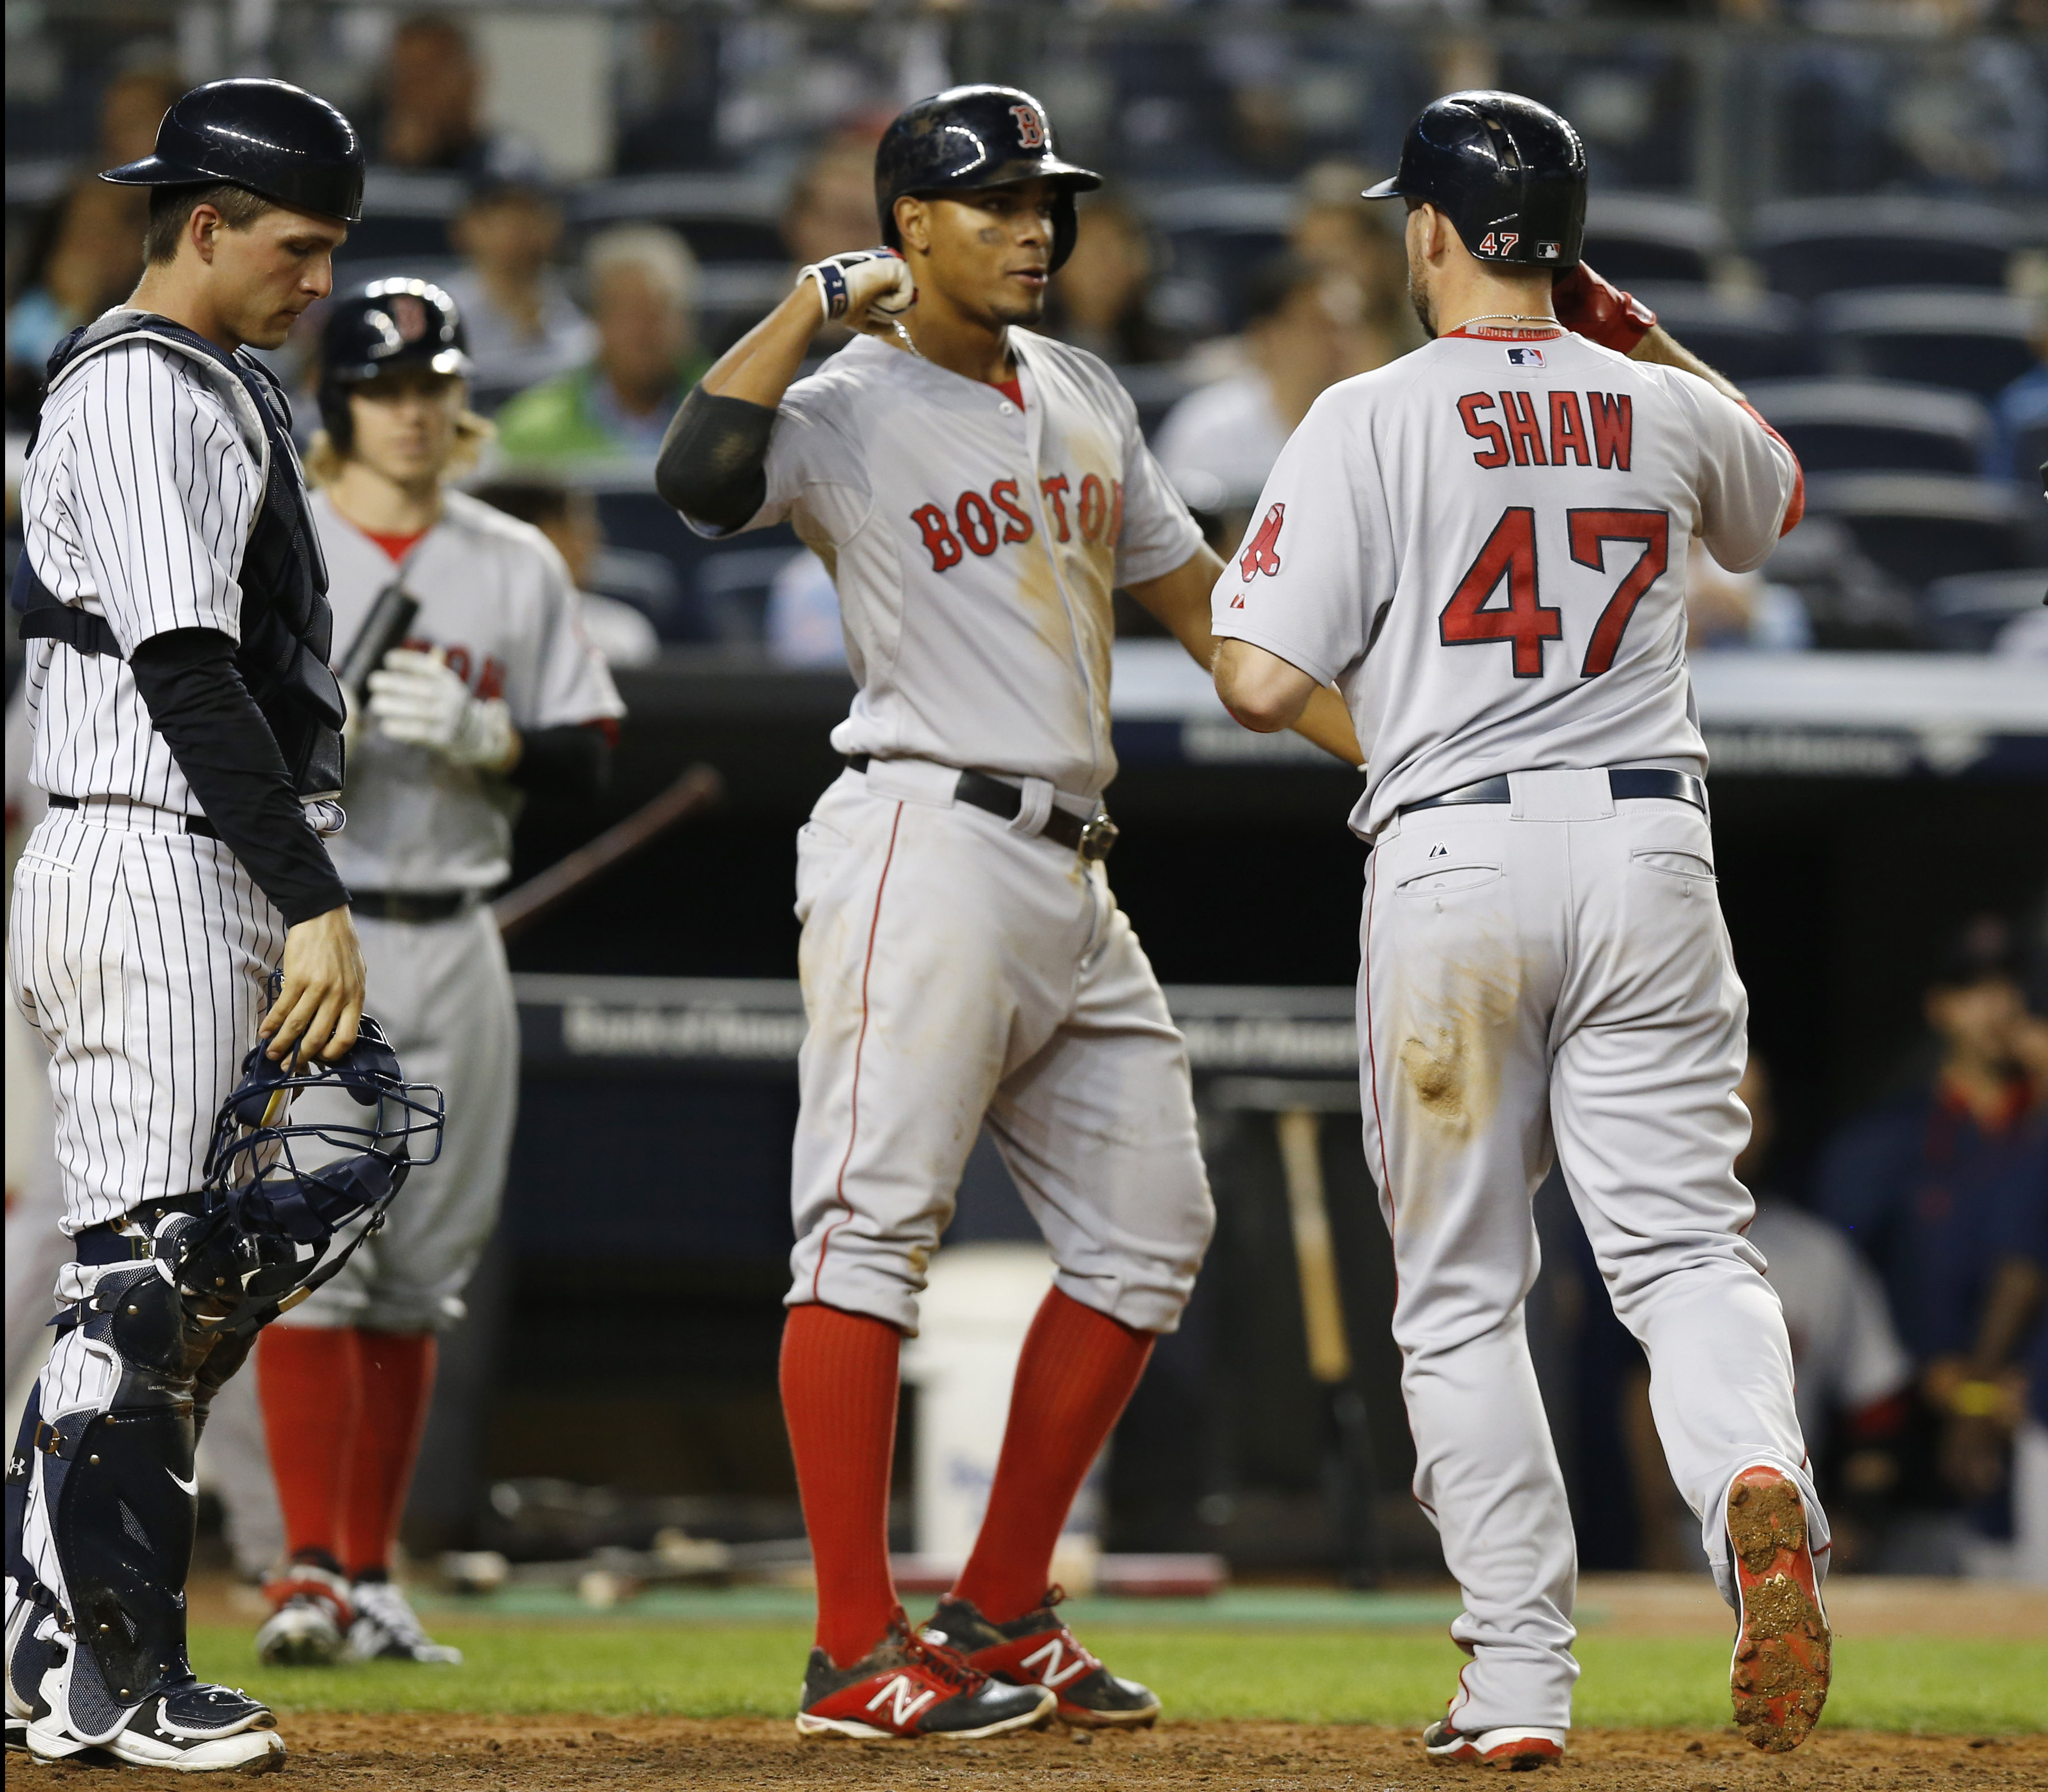 New York Yankees catcher John Ryan Murphy reacts as Boston Red Sox' Xander Bogaerts, center, greets Red Sox's Travis Shaw (47) after scoring on Shaw's sixth-inning, two-run, home run off New York Yankees starting pitcher Ivan Nova in a baseball game at Ya